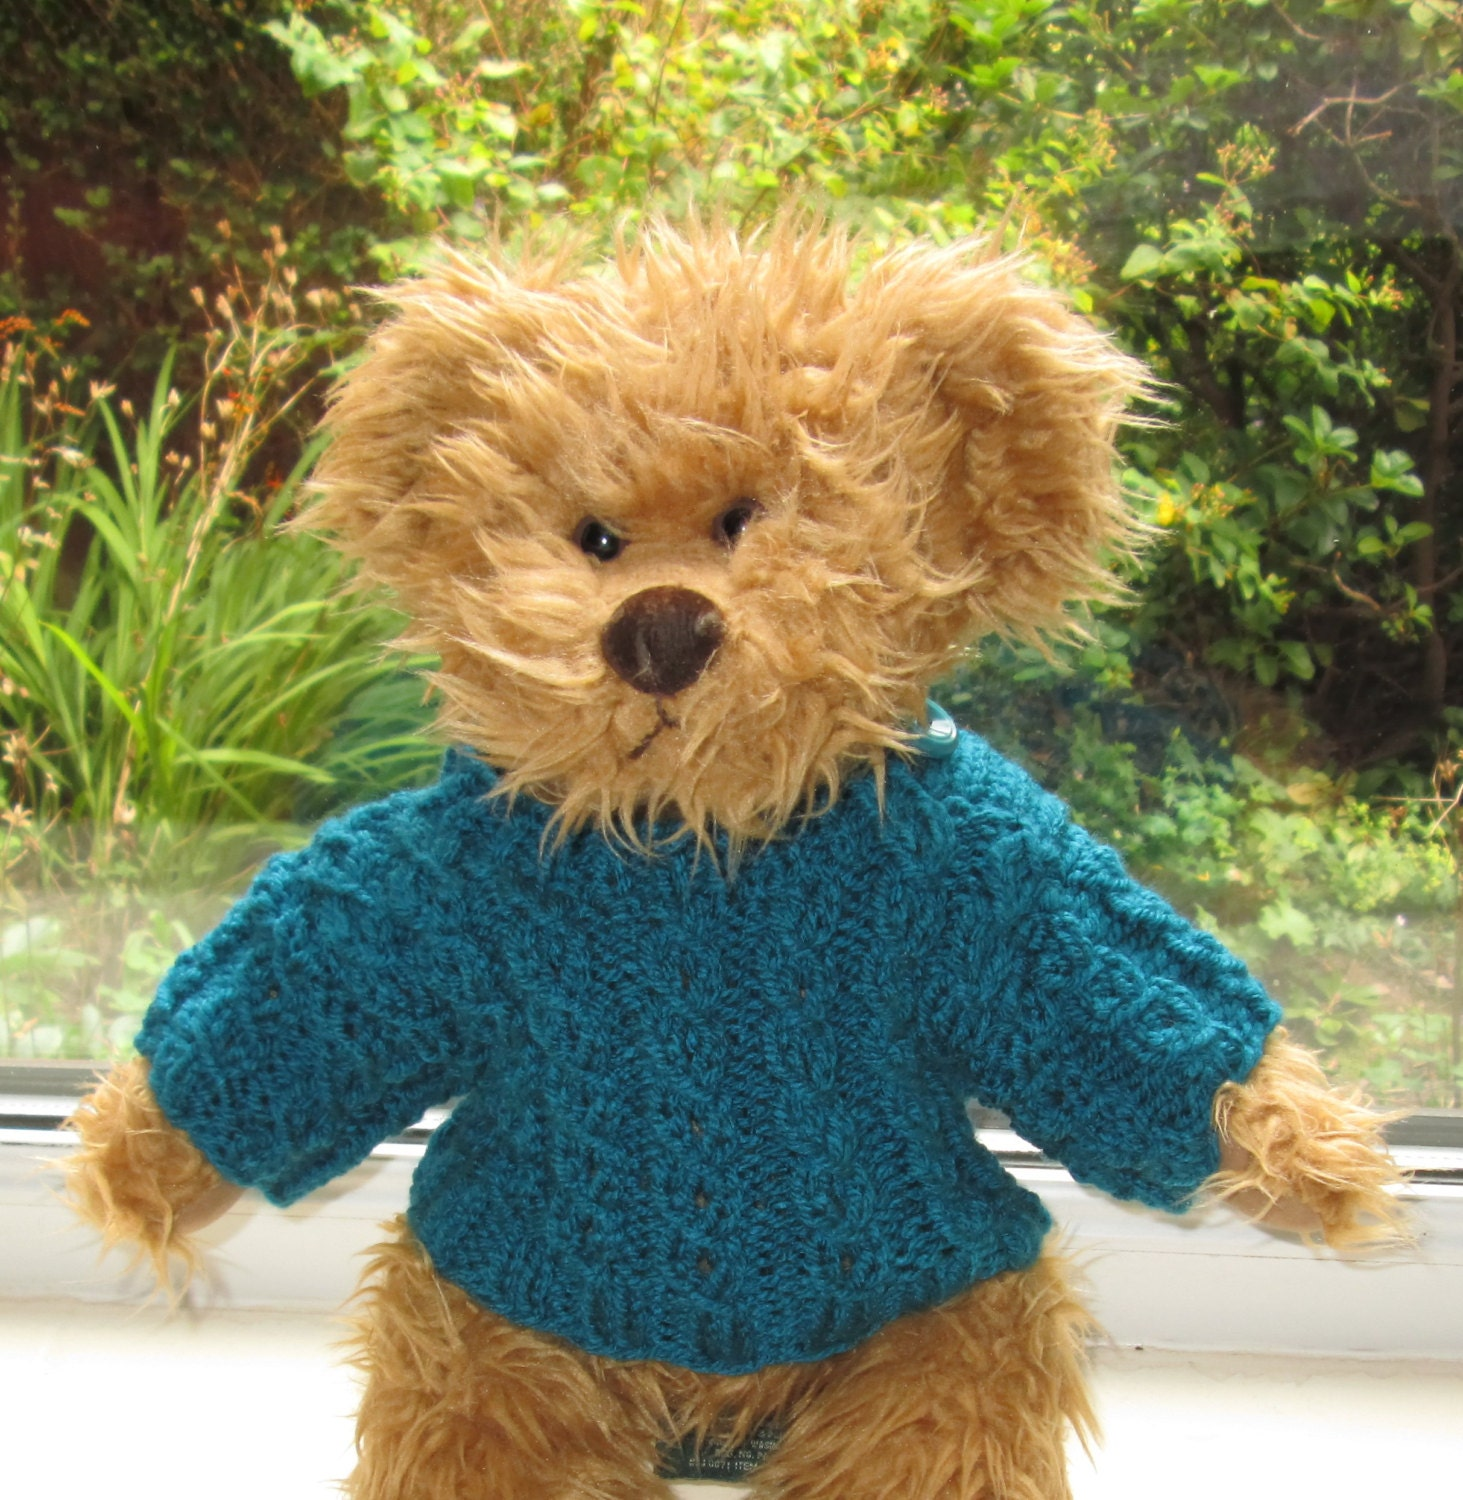 Teddy Bear Clothes Traditional Hand Knitted Turquoise Aran Cable Patterned JumperSweater To Fit An 14 inch bear Toy Clothes Ready To Ship